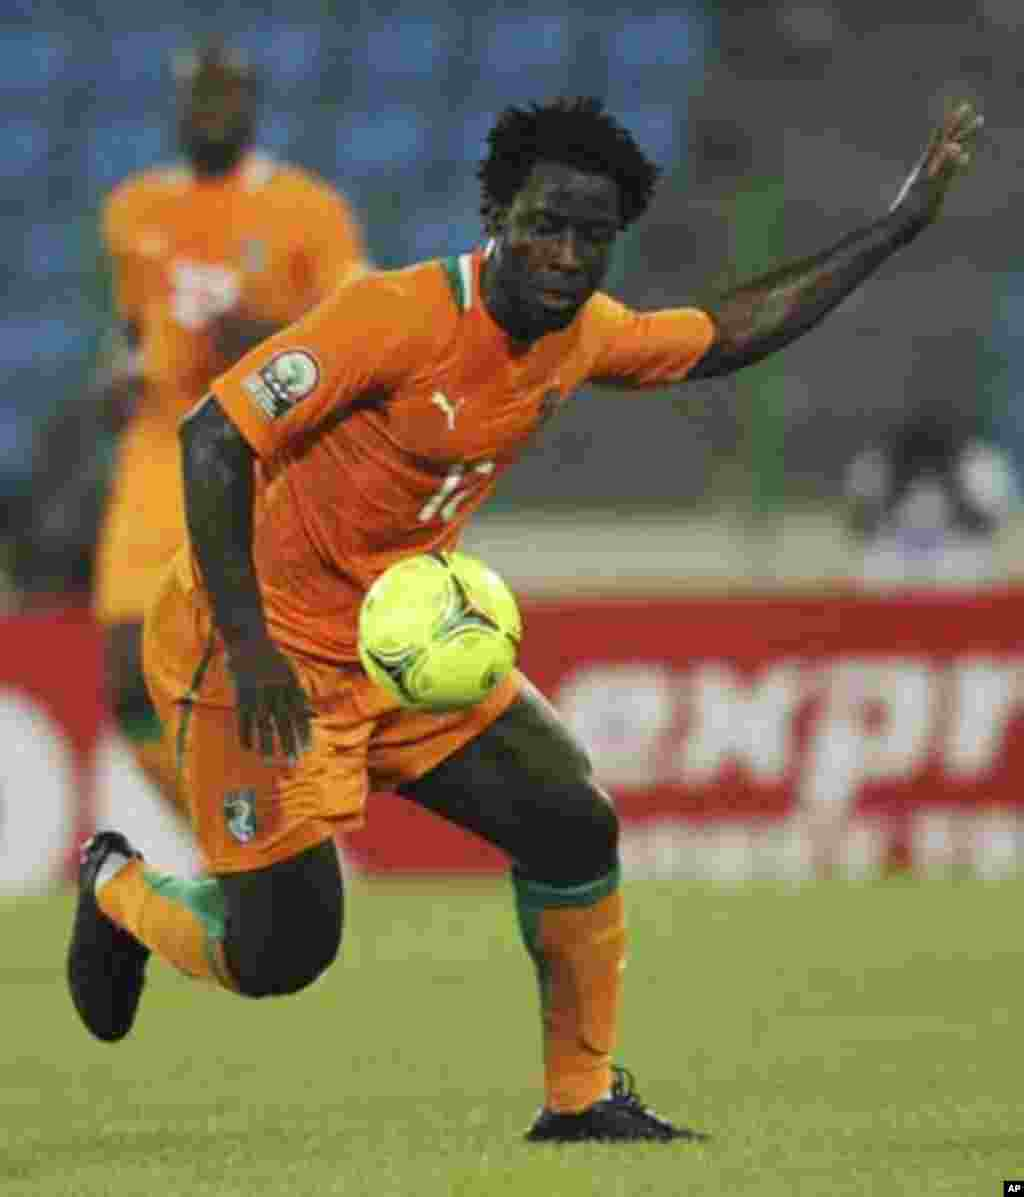 Wilfried Bony of Ivory Coast controls the ball during their African Nations Cup soccer match against Angola in Malabo January 30, 2012.